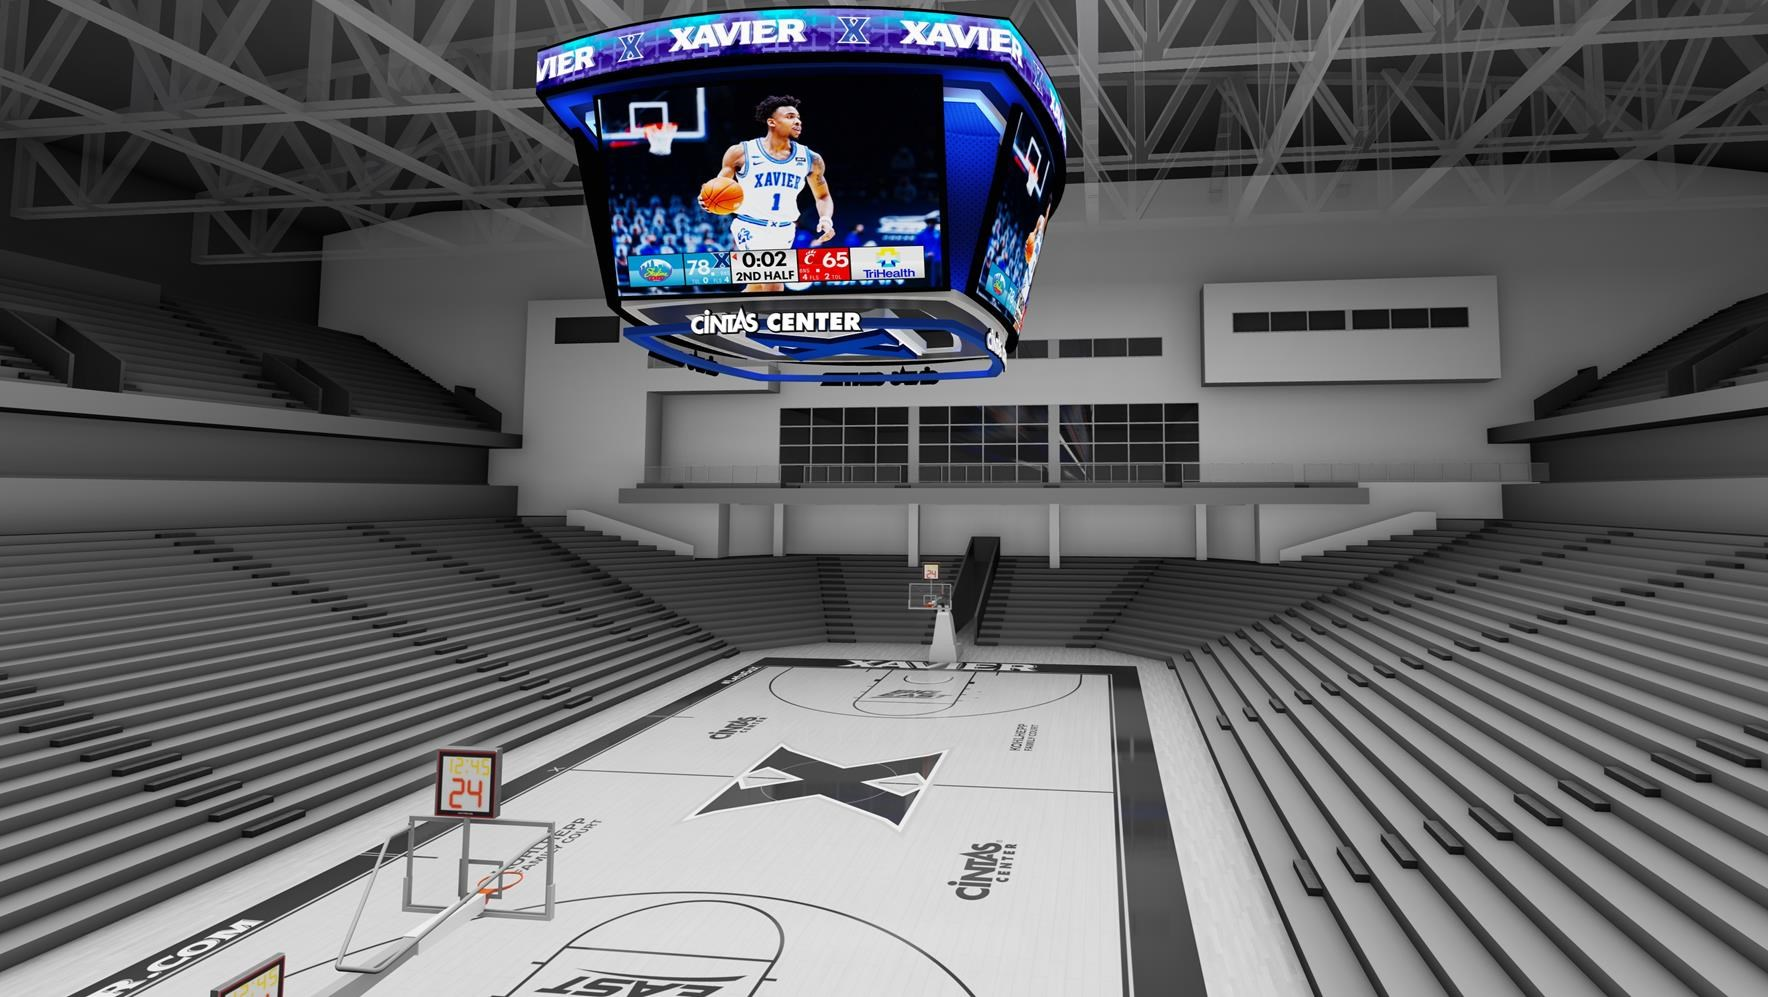 Xavier unveils $3 million project to add a new scoreboard, upgrade Cintas Center technology